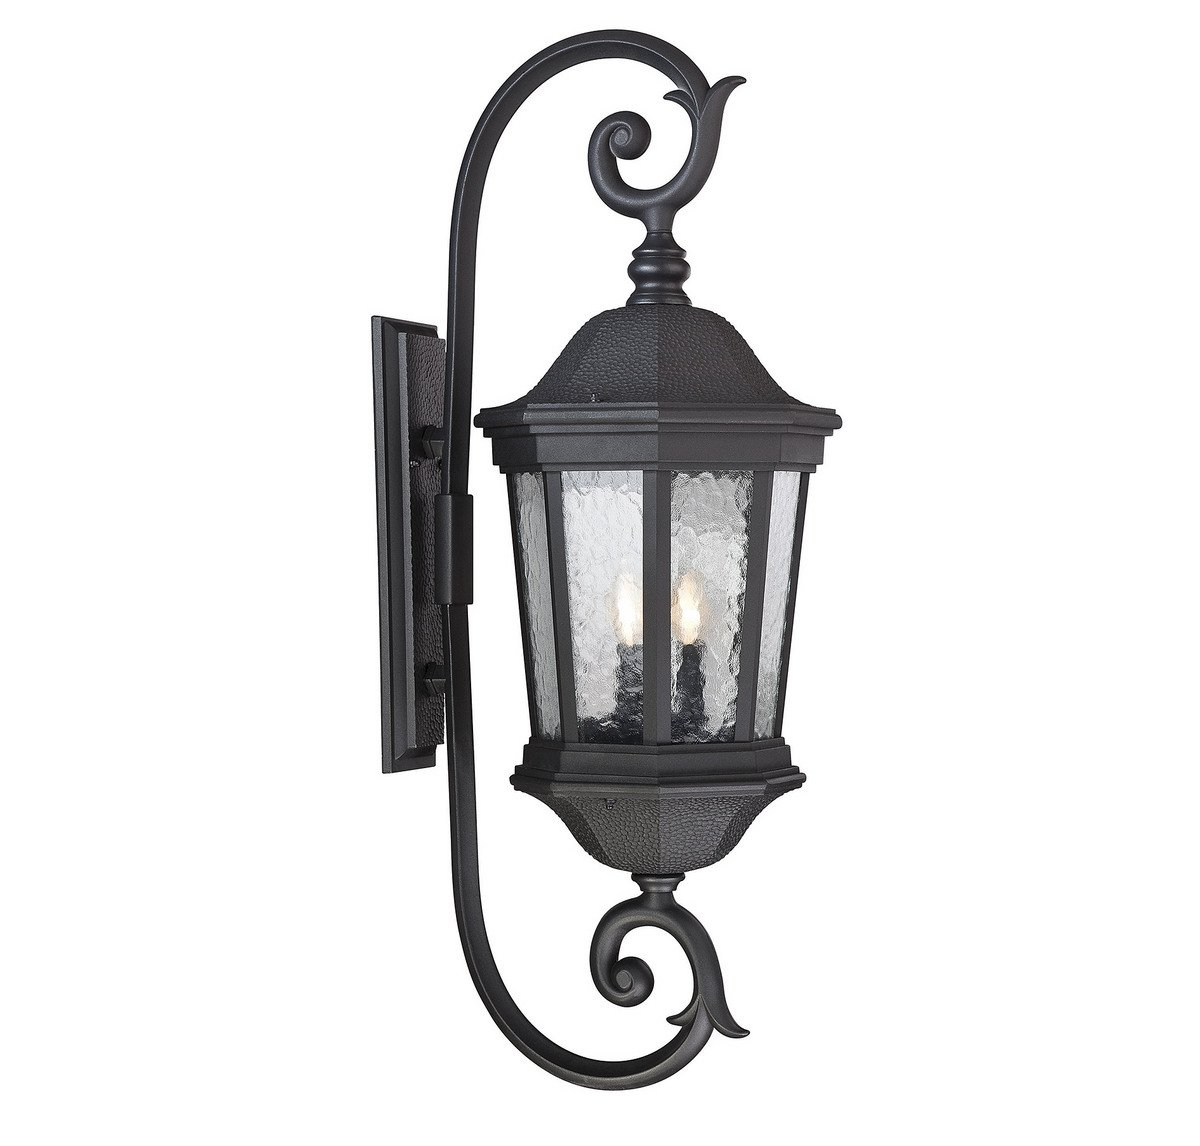 Savoy House 5-5085-BK Hampden 3-Light Outdoor Wall Lantern in Black